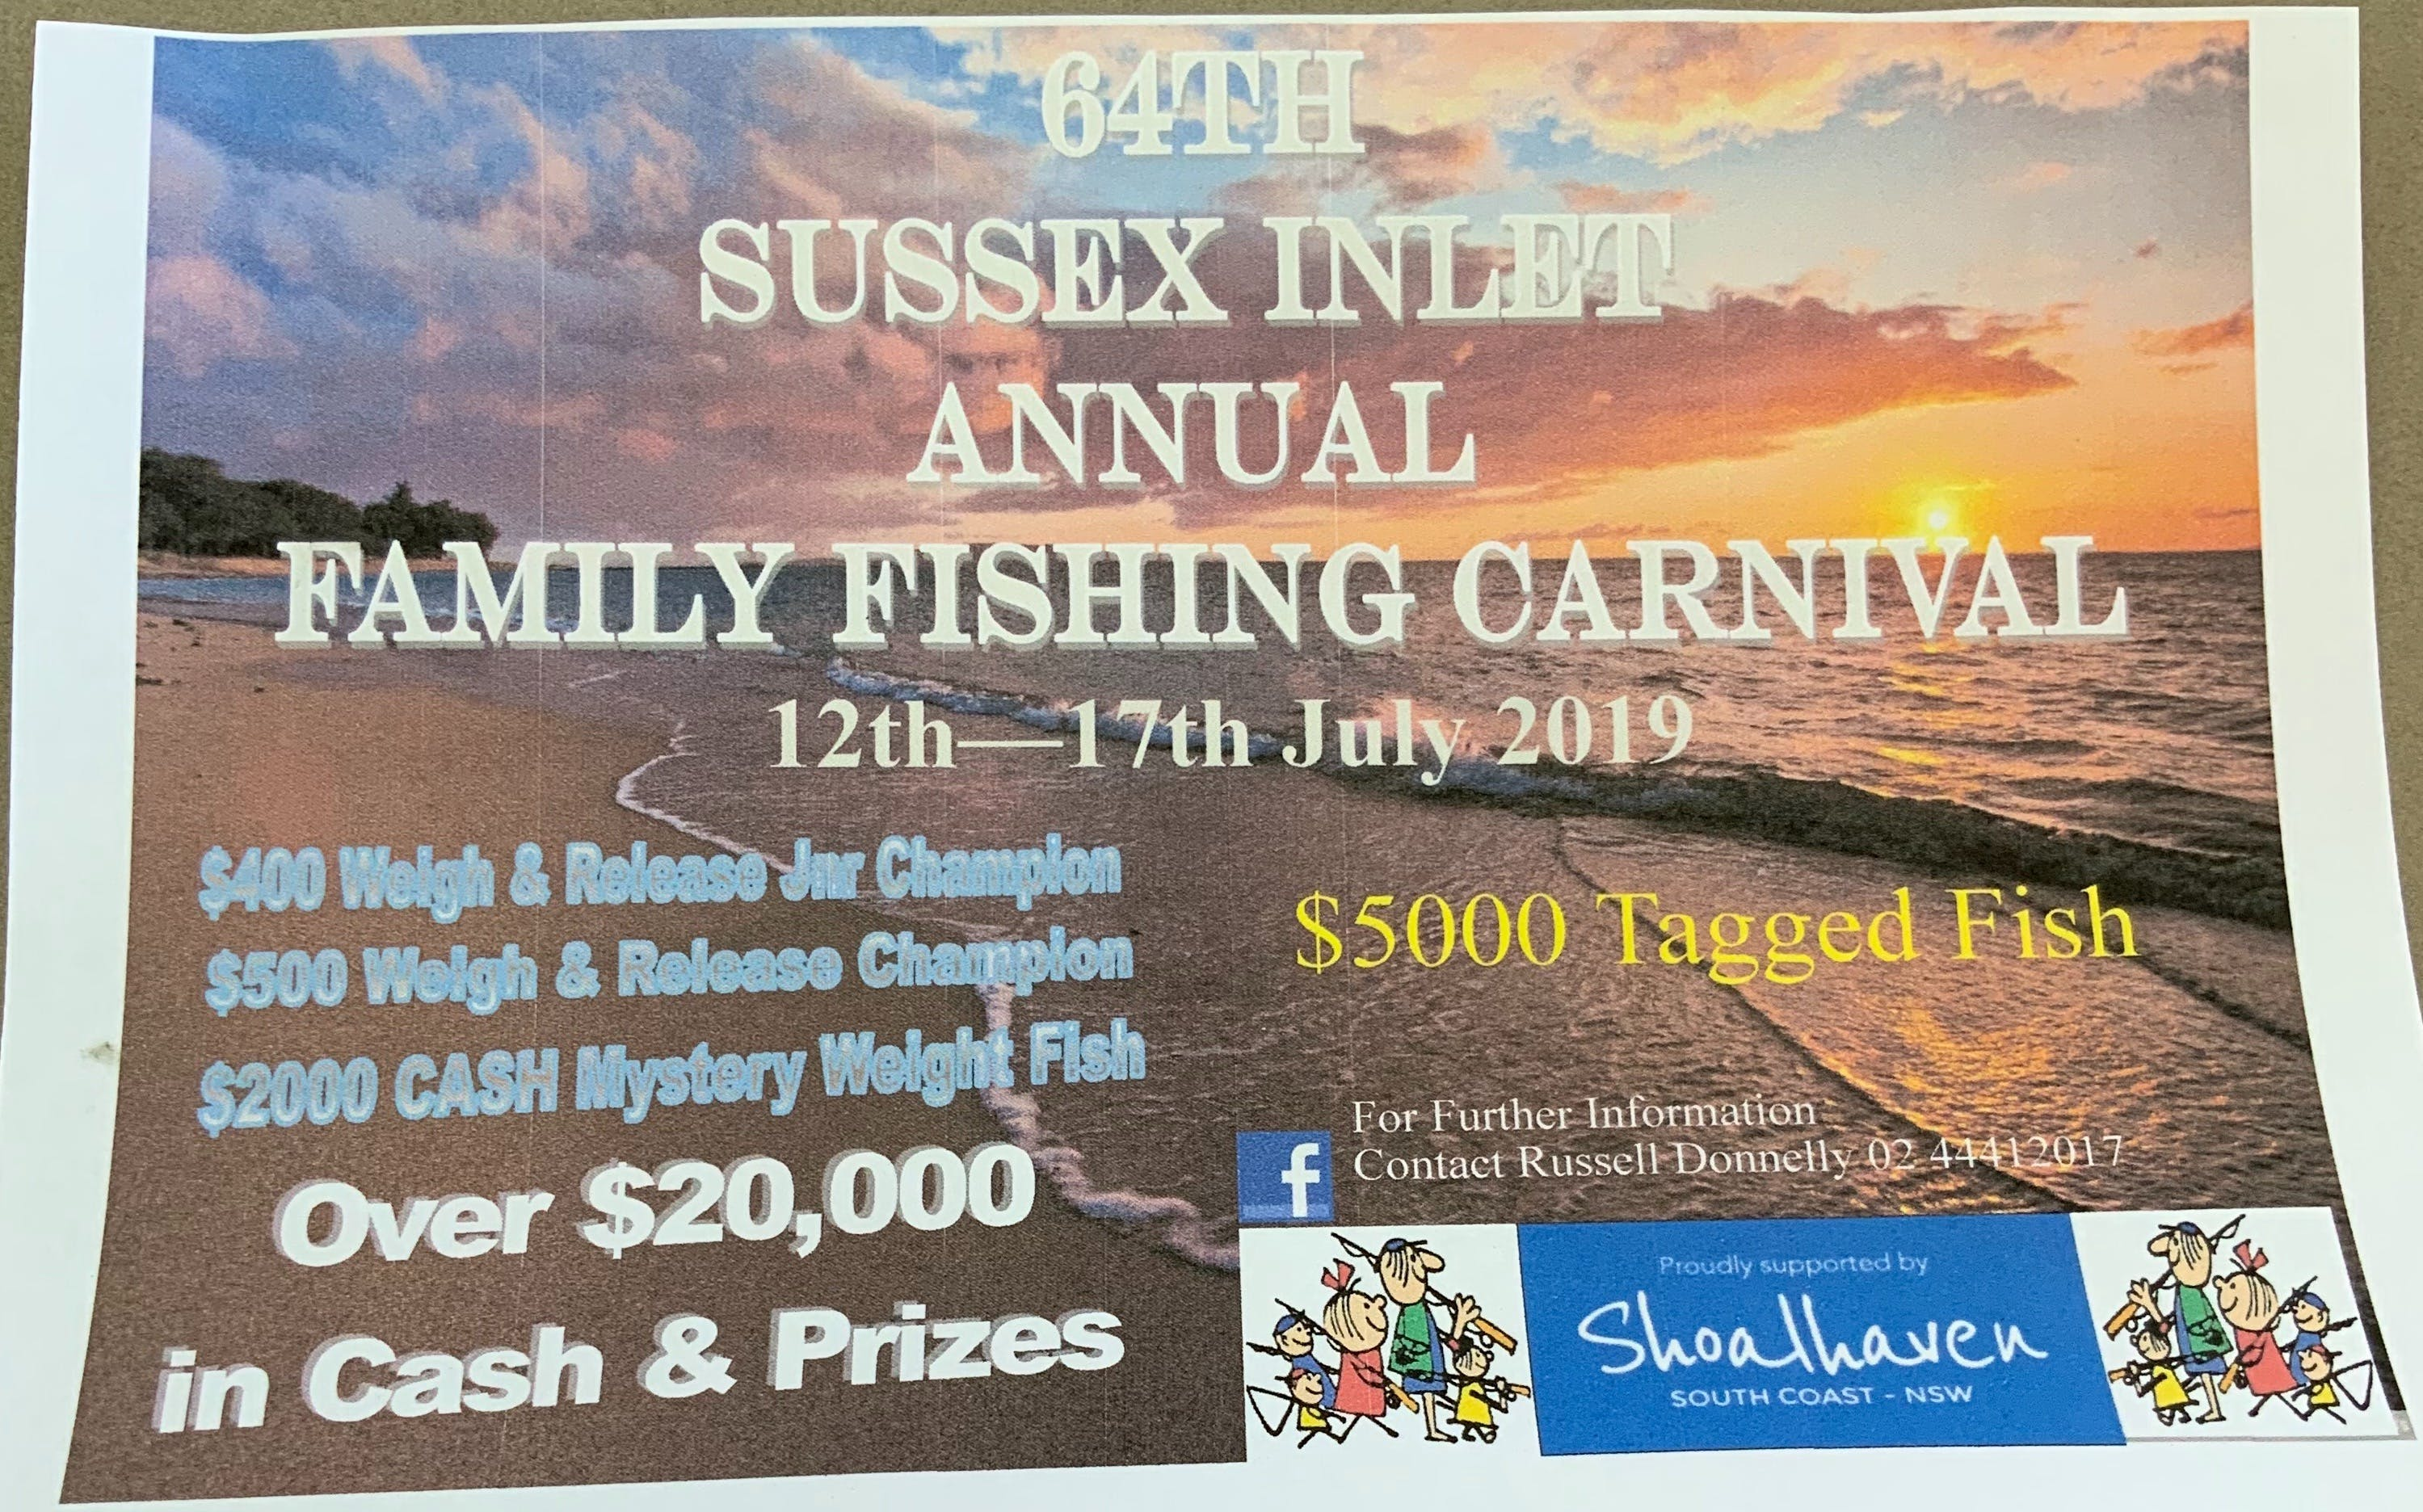 The Sussex Inlet Annual Family Fishing Carnival - Kempsey Accommodation